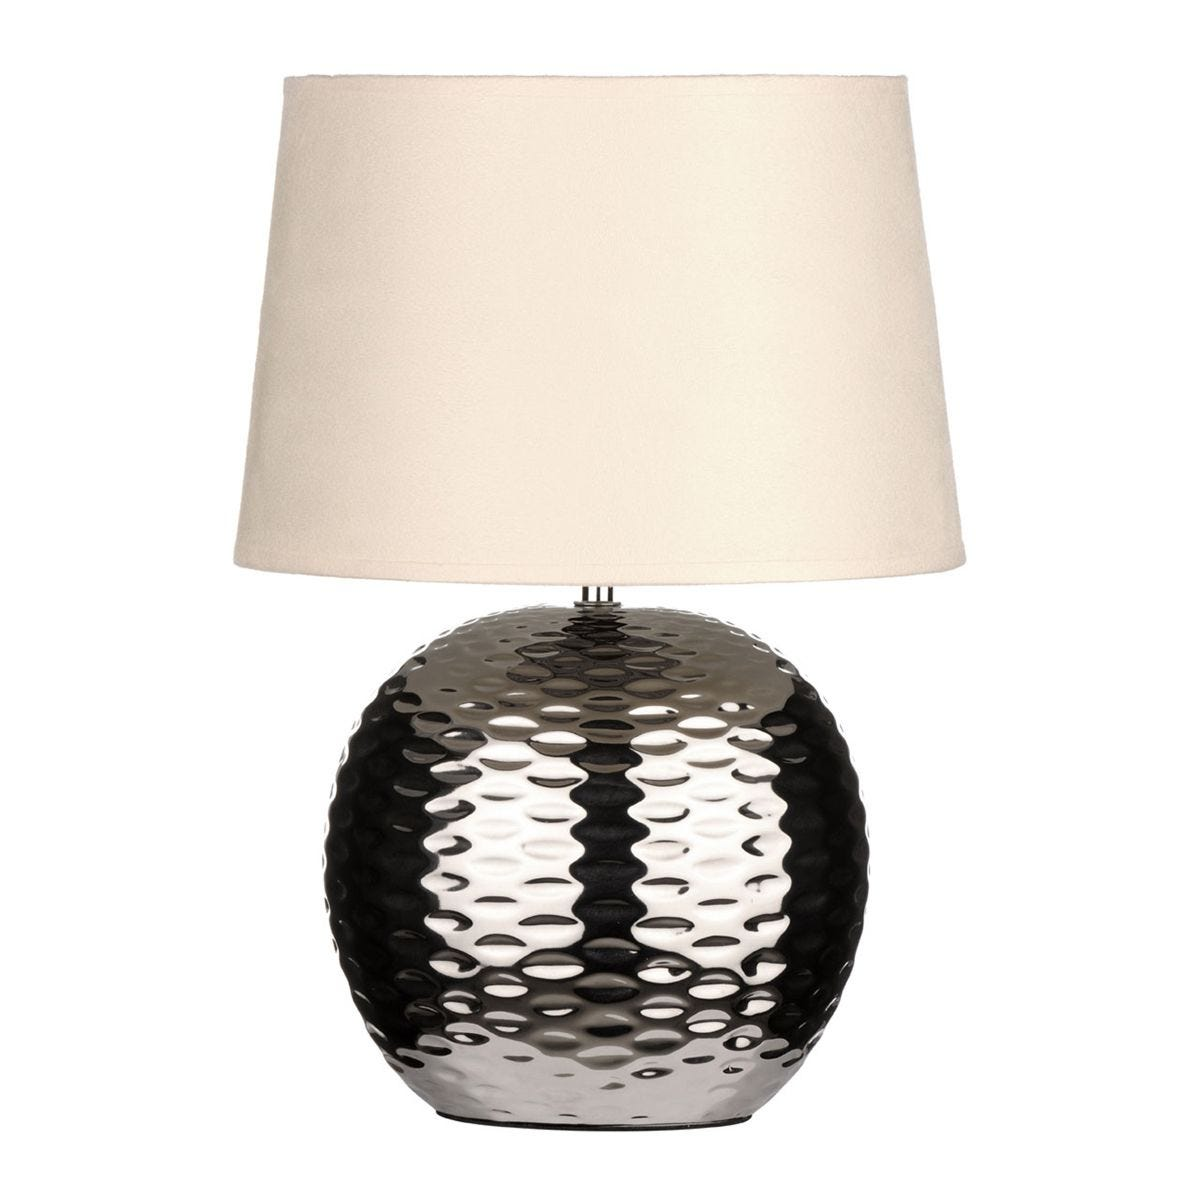 Premier Housewares Table Lamp with Dimple Effect Chrome Base & Beige Fabric Shade